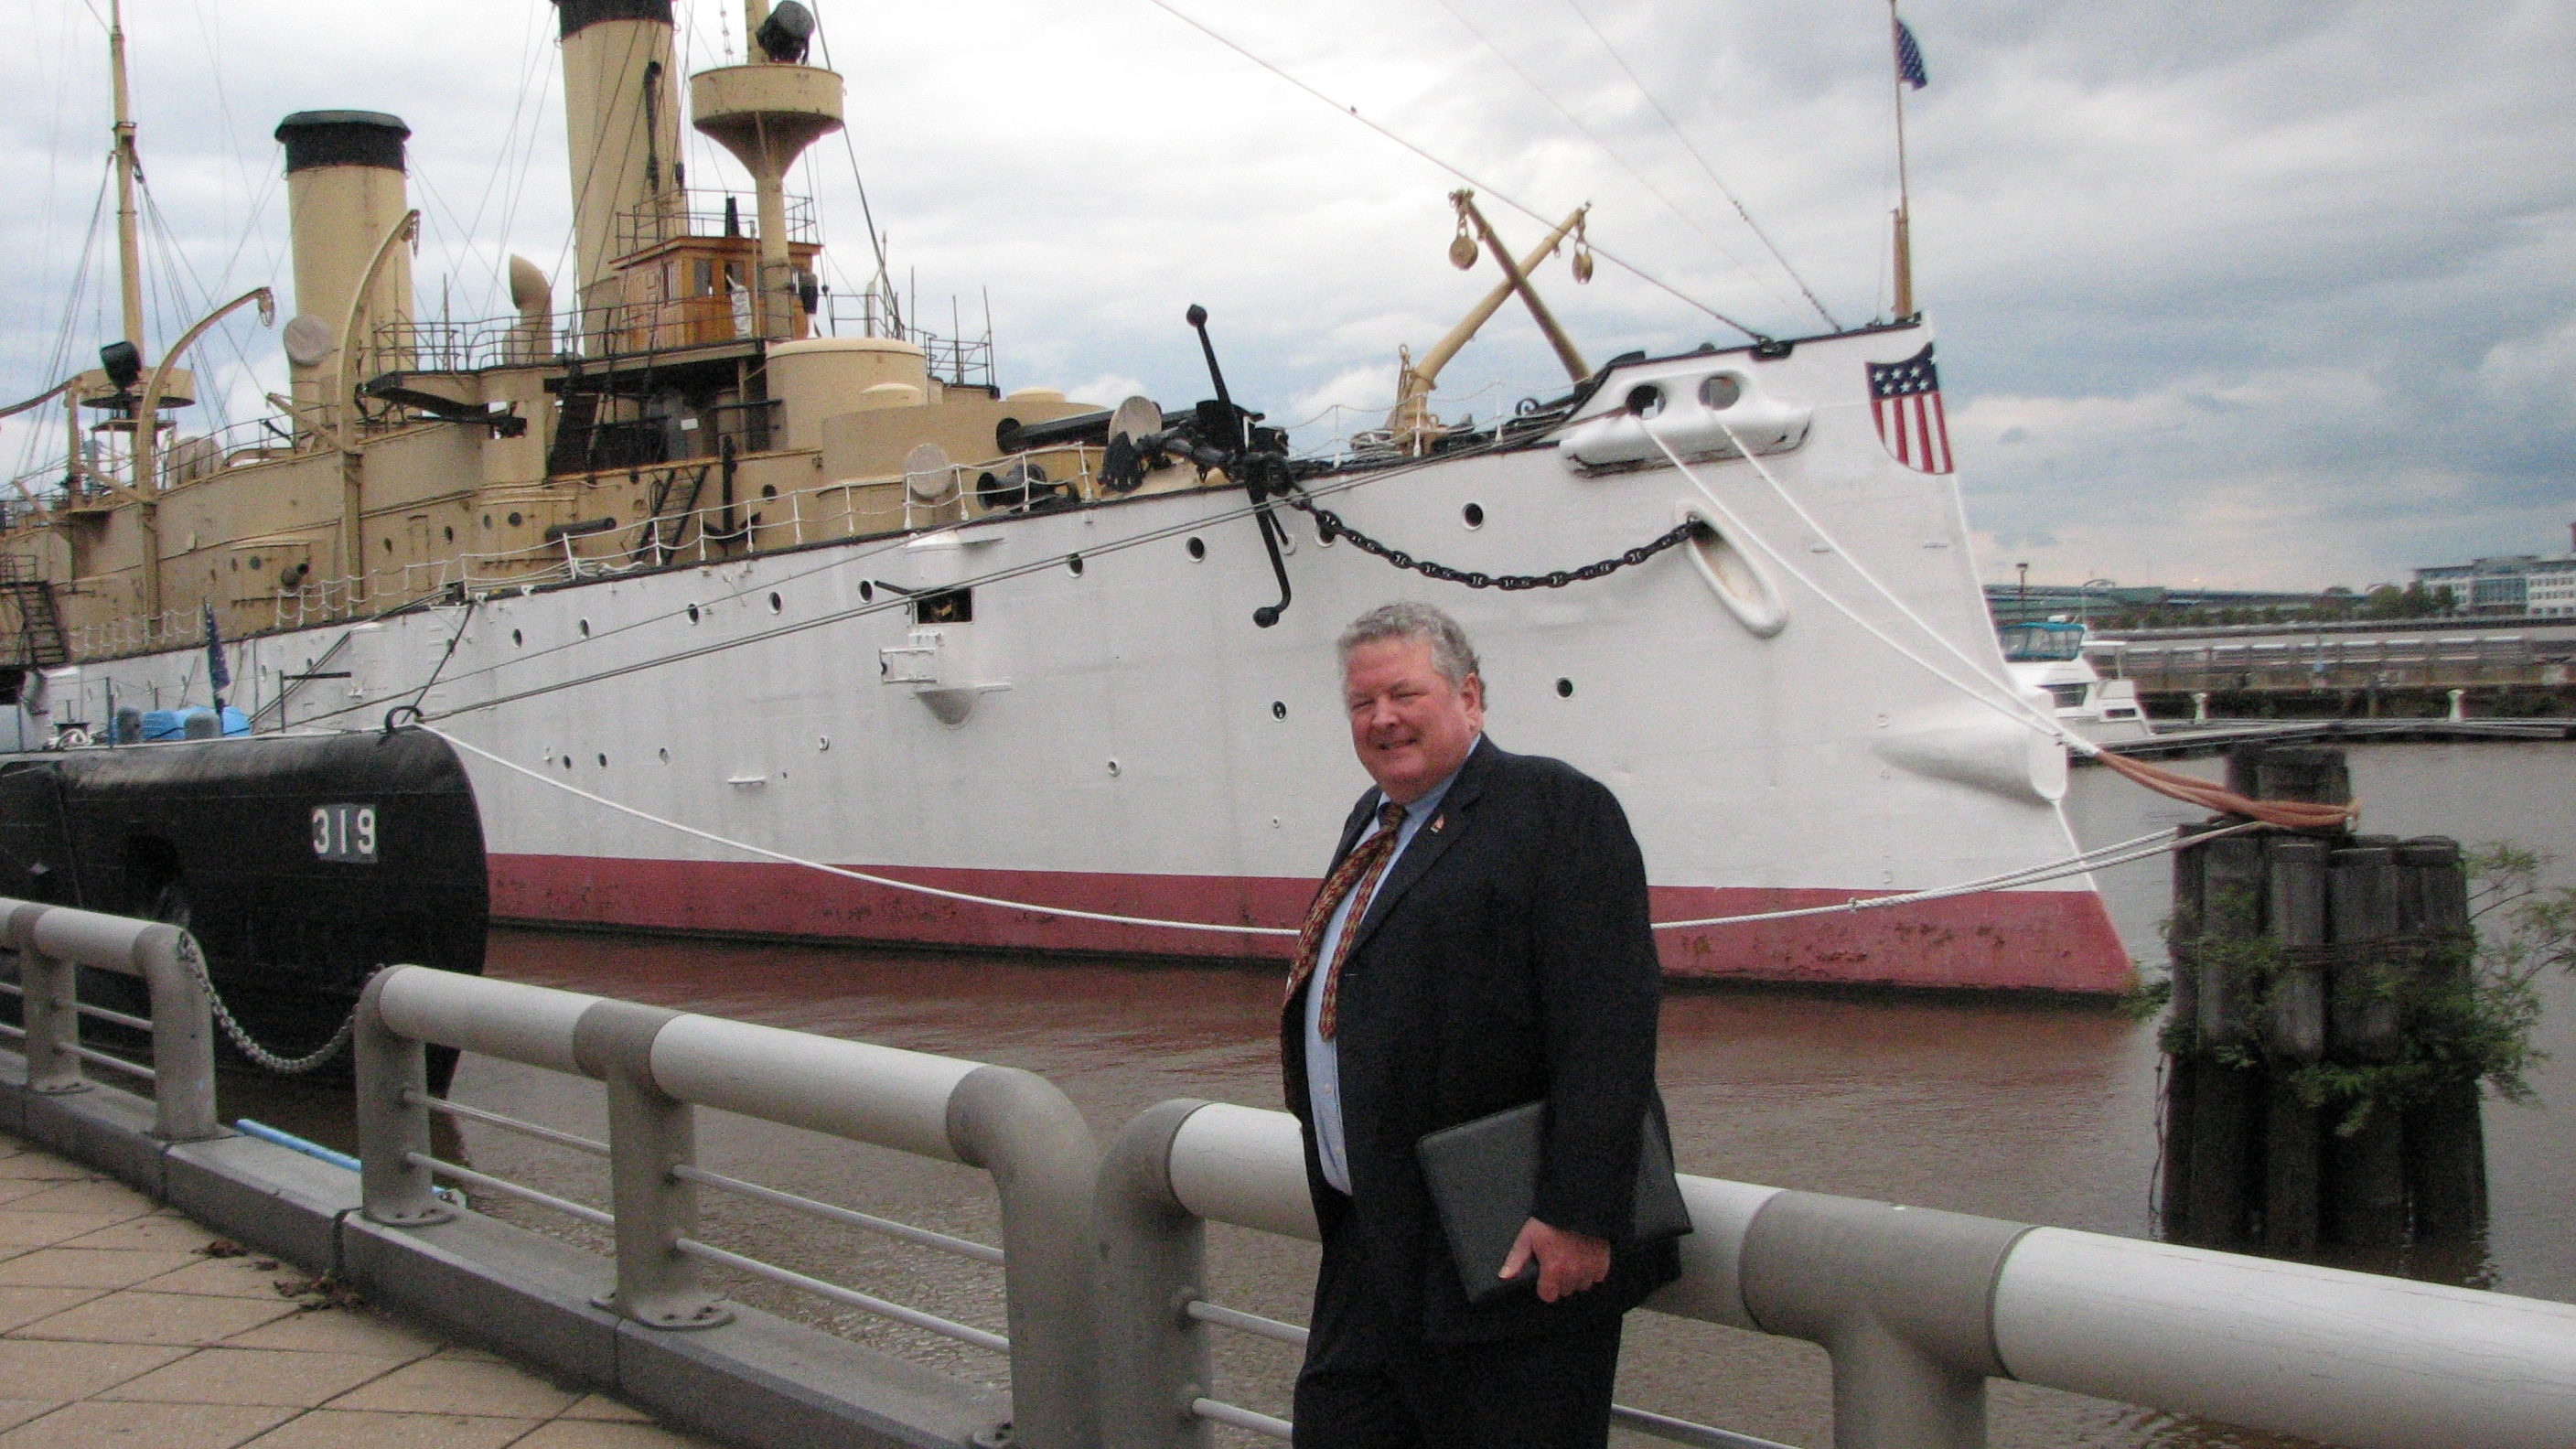 Retired Navy office Glenn Porter has a fundraising plan for the historic ship docked at Penn's Landing.